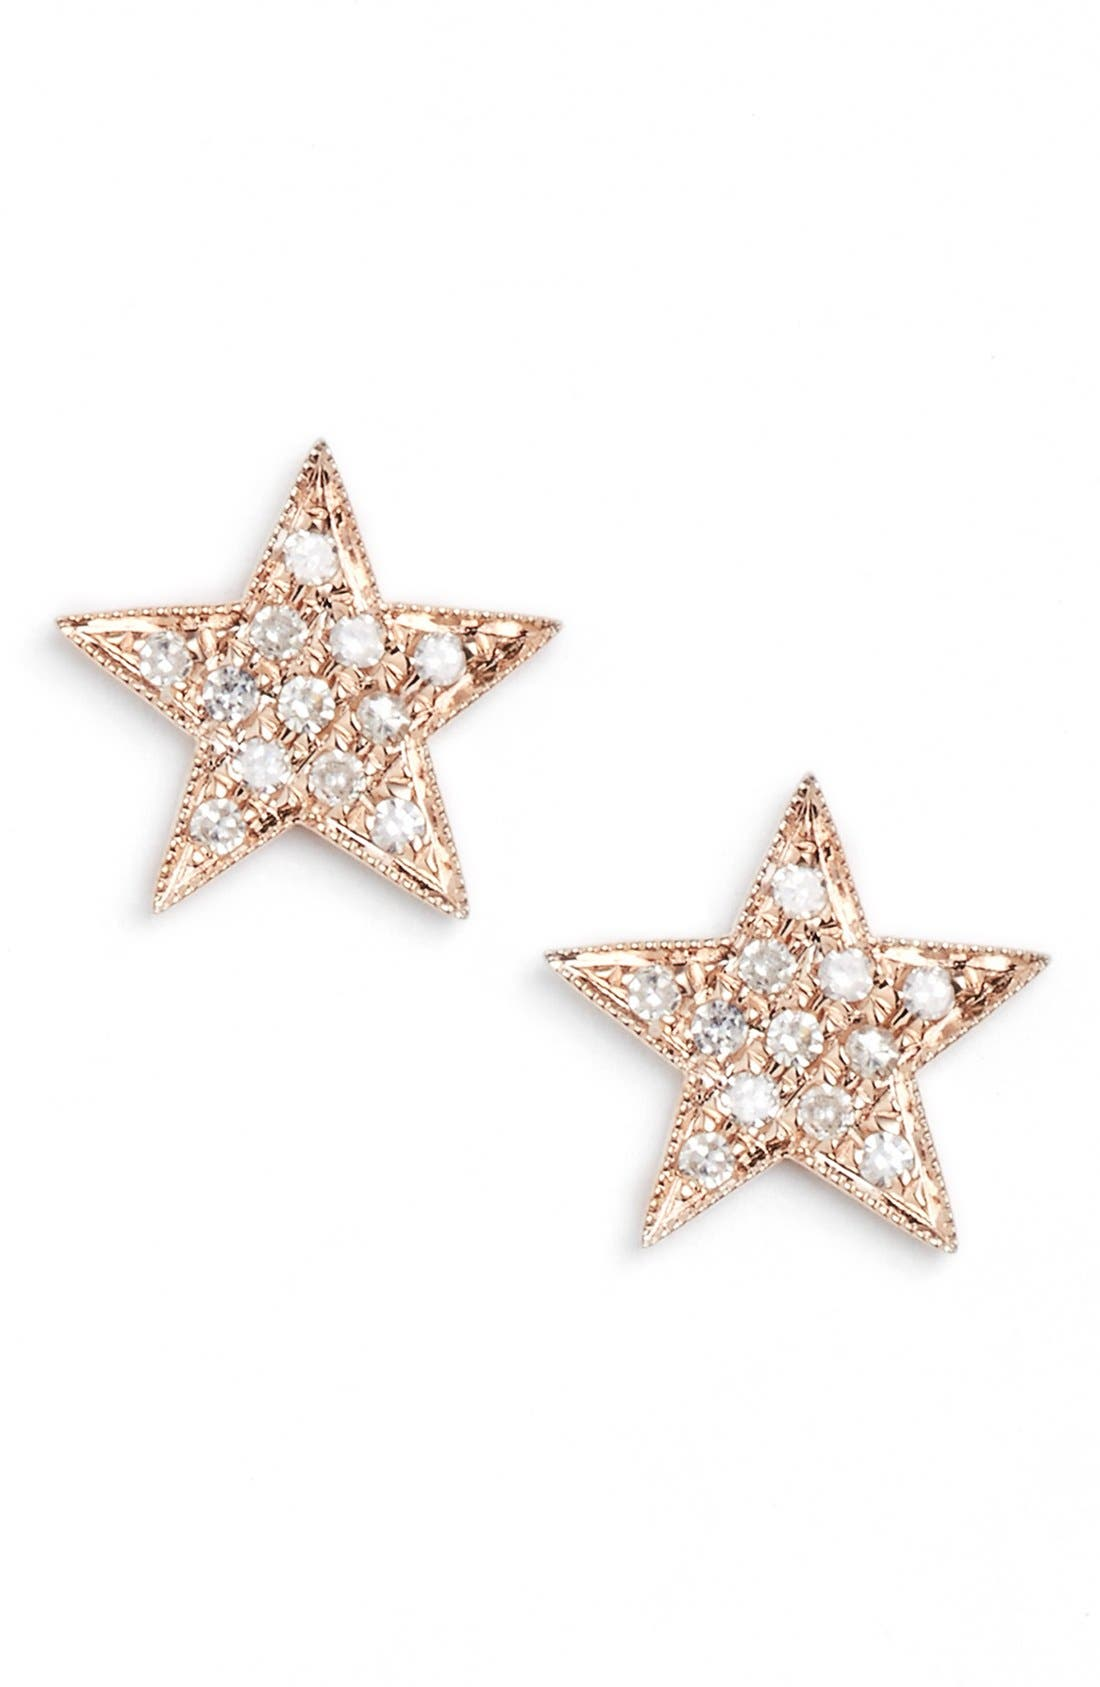 DANA REBECCA DESIGNS 'Julianne Himiko' Diamond Star Stud